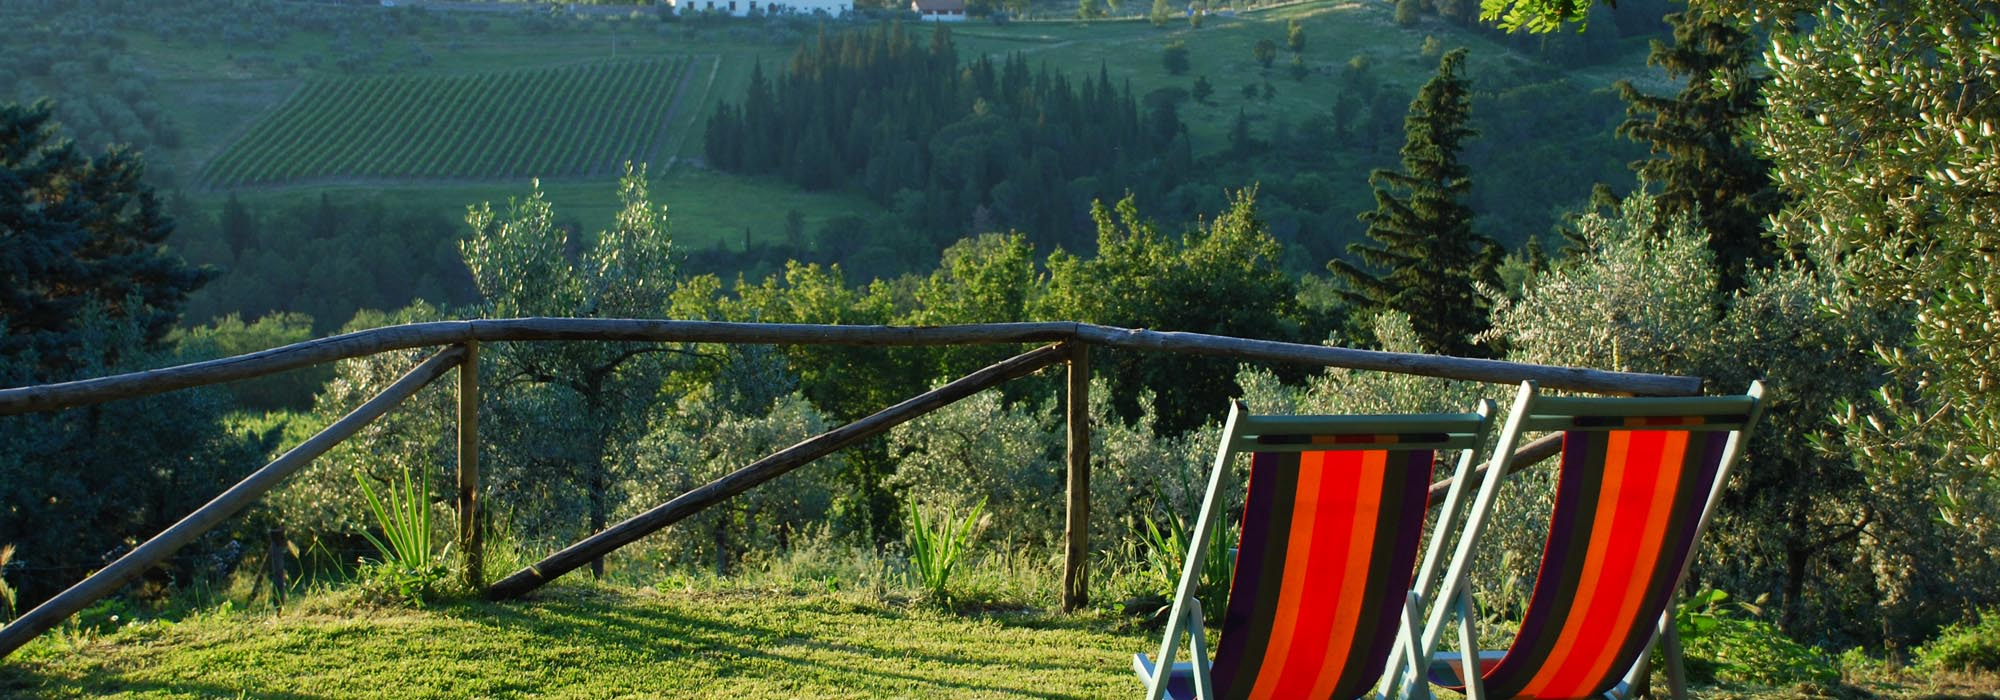 Chianti Bed and Breakfast near Florence Tuscany | Ancora del Chianti